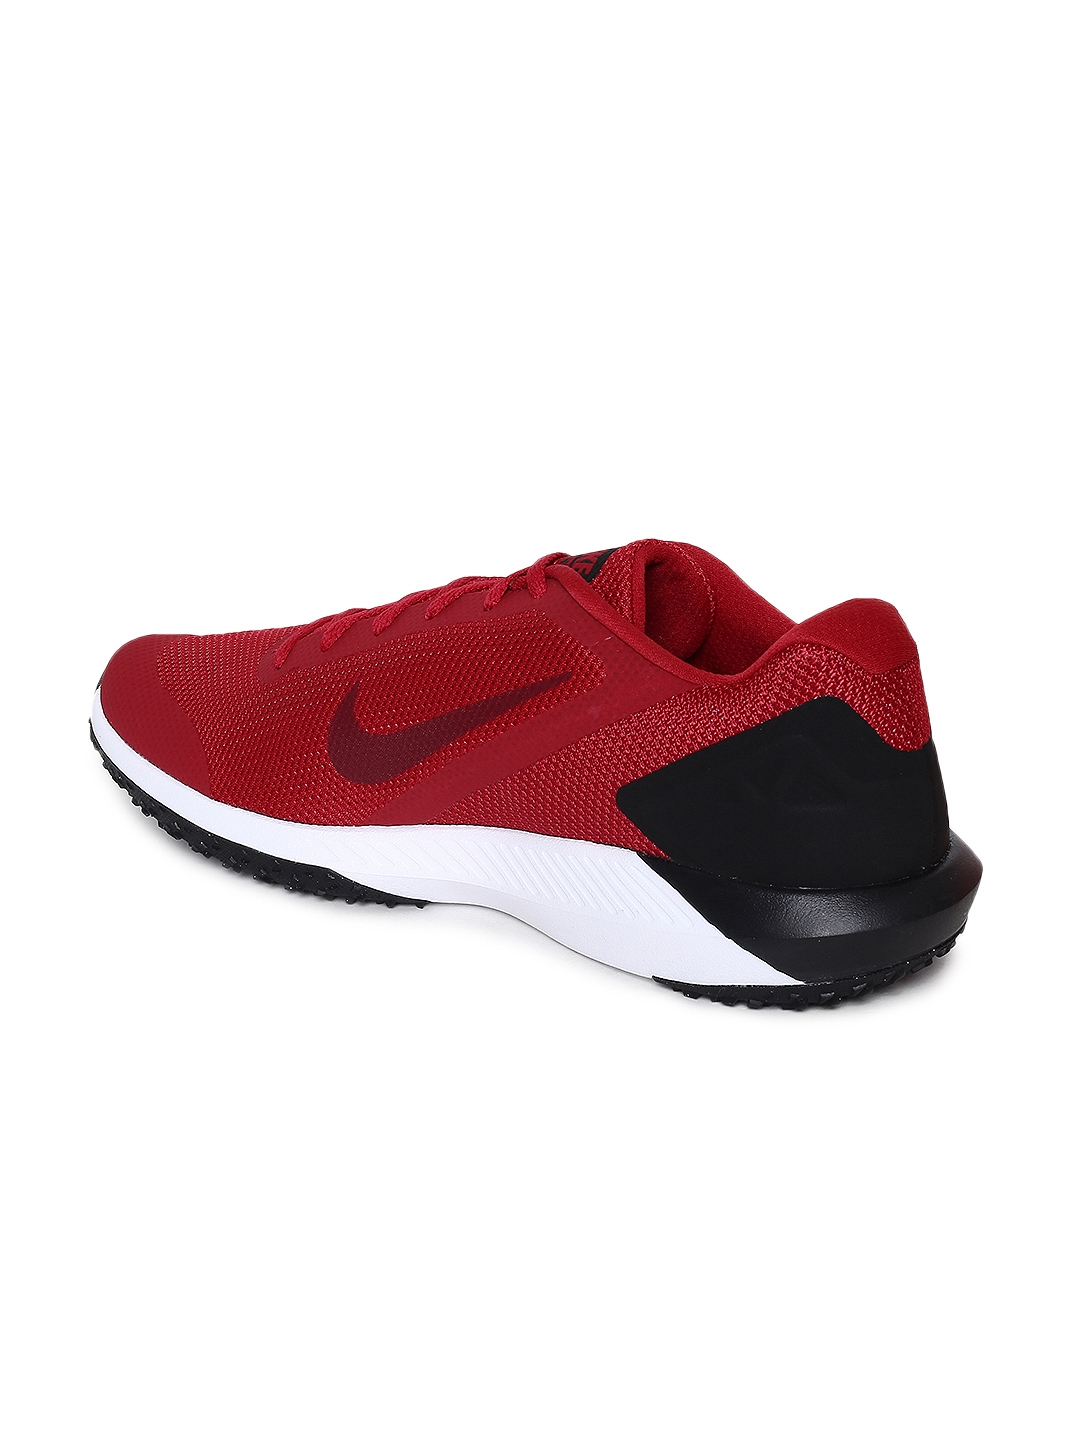 4b2173f79120c Buy Nike Men Red RETALIATION TR 2 Training Shoes - Sports Shoes for ...